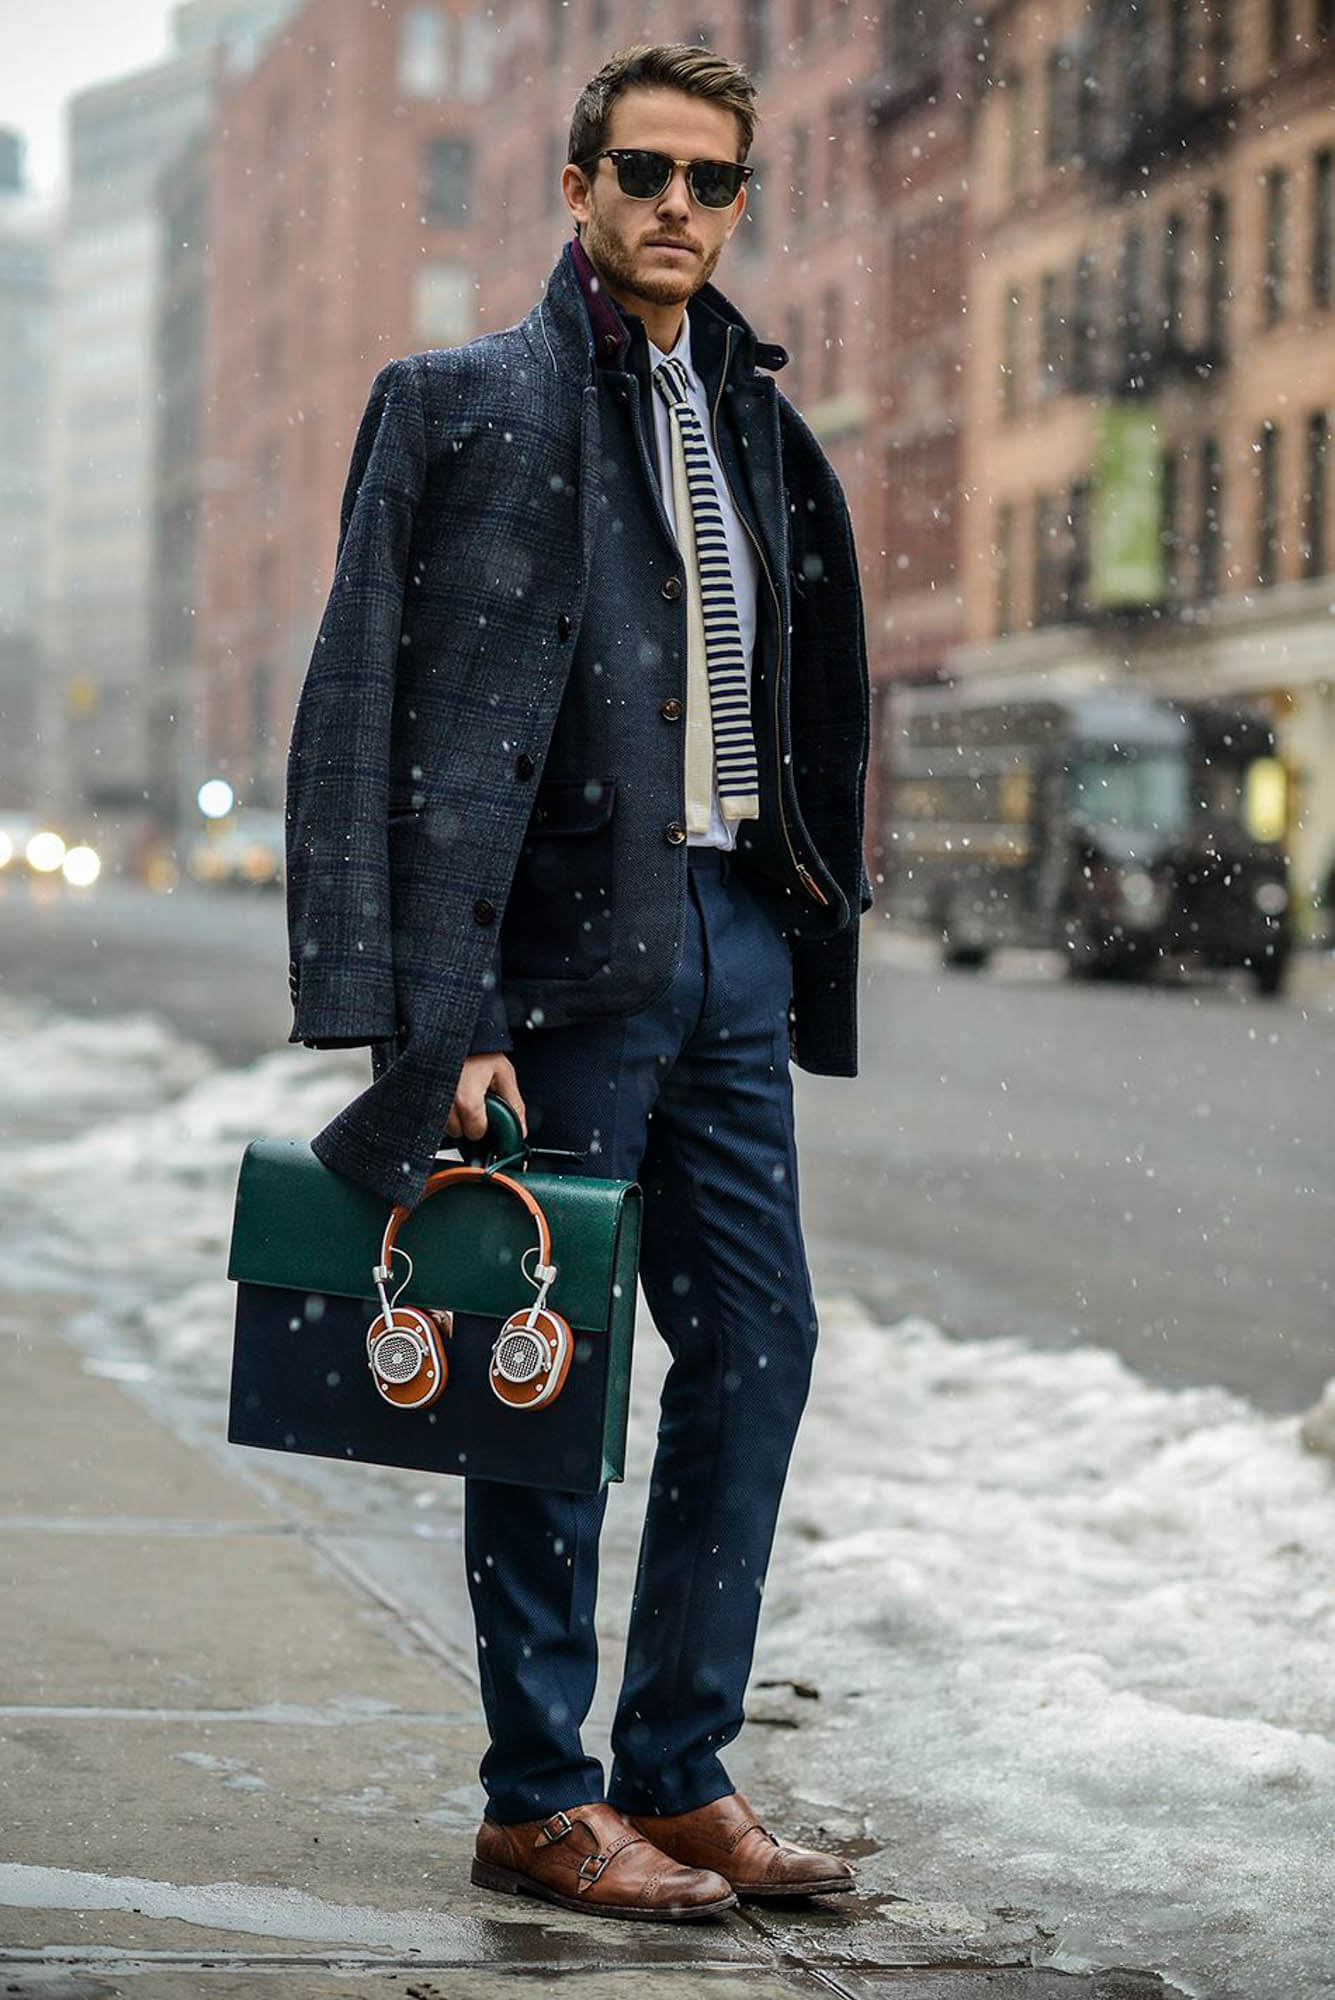 A-great-business-casual-outfit-with-outerwear-and-accessories.jpg